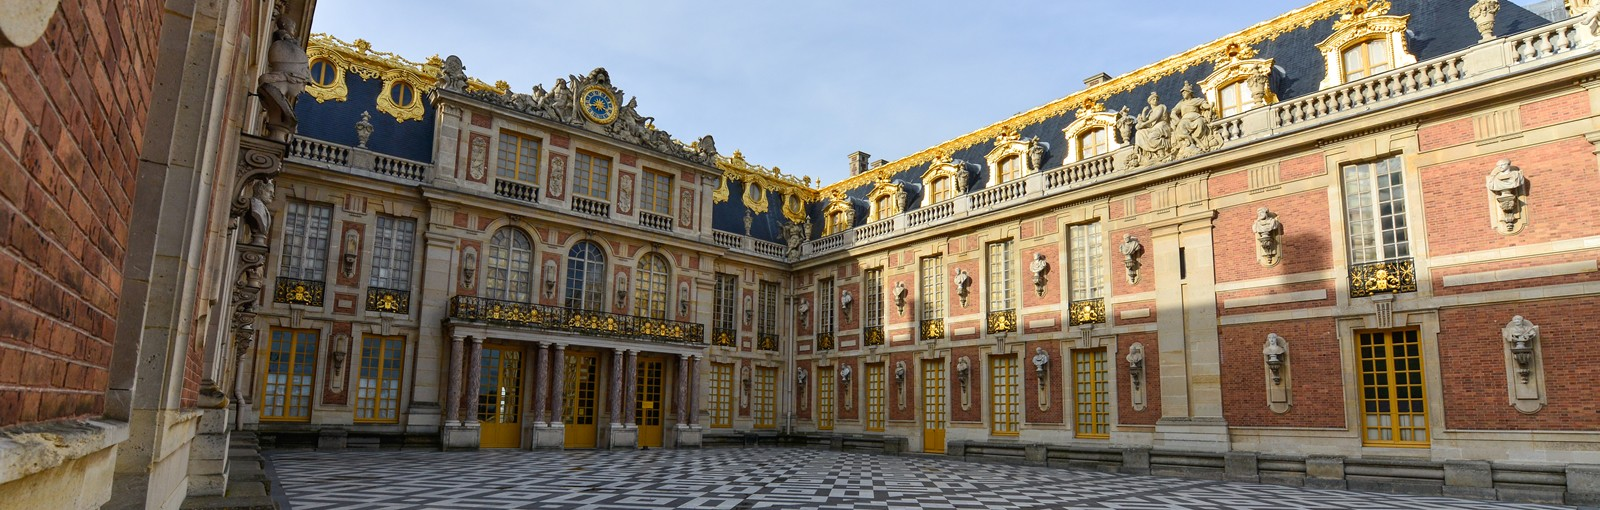 Tours Paris & Versailles full day tour - Sightseeing - Paris Tours